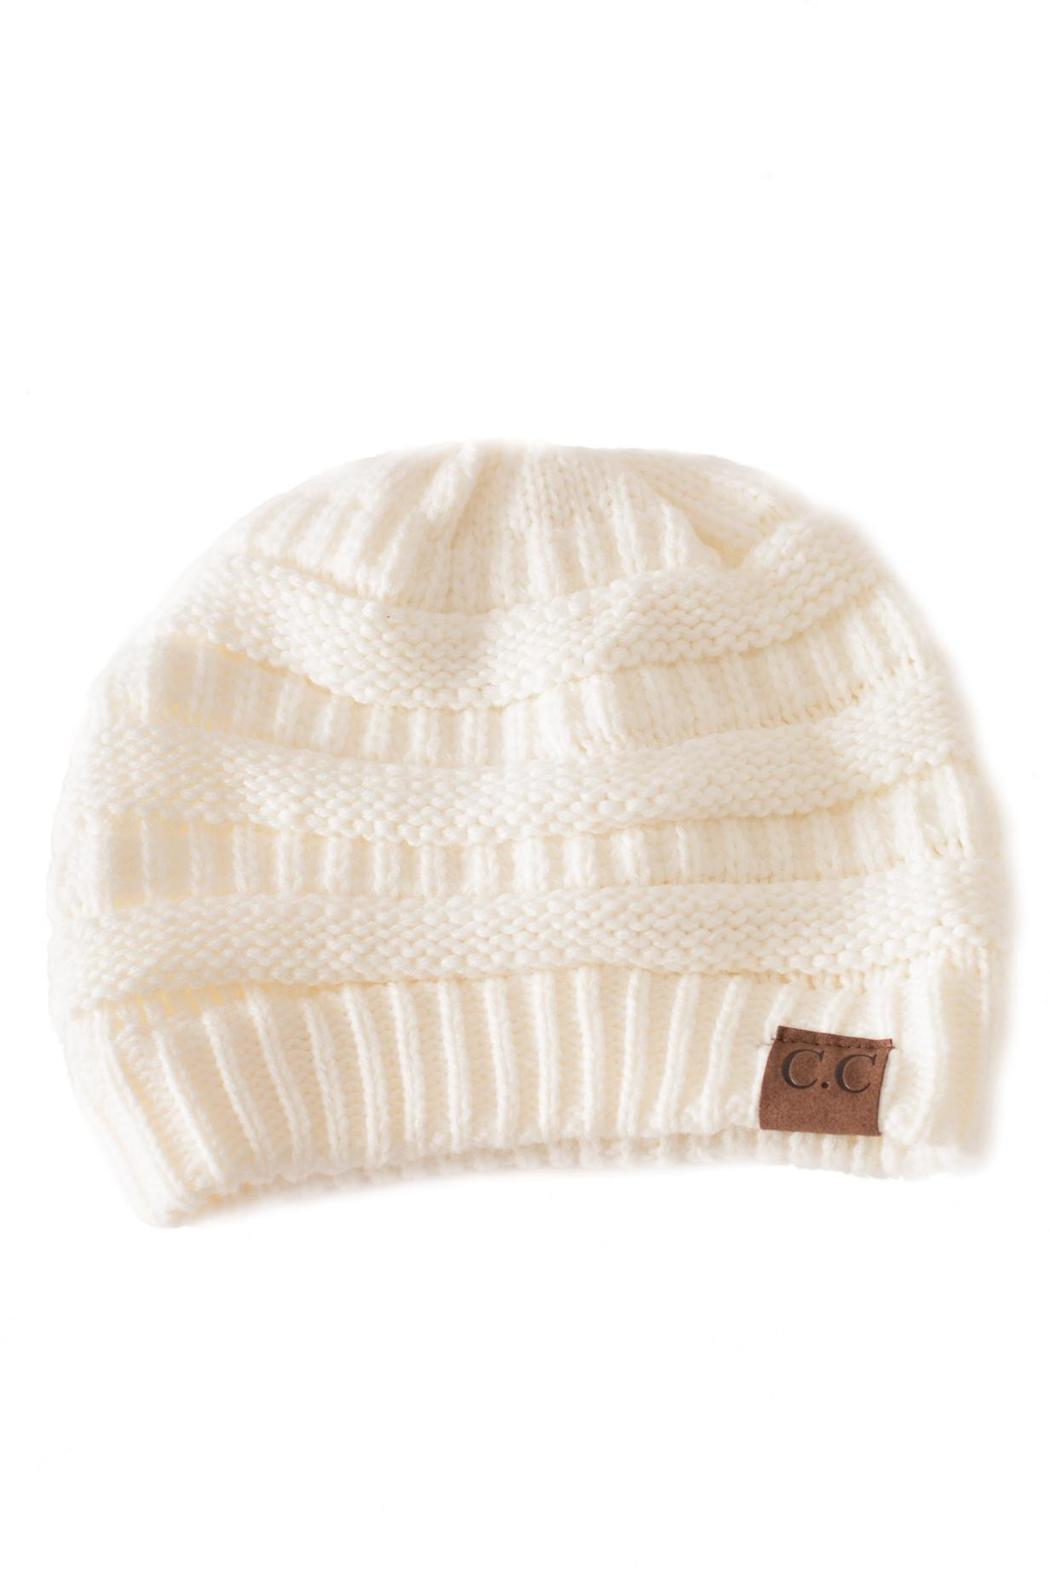 C.C. Ivory Knit Beanie - Front Cropped Image